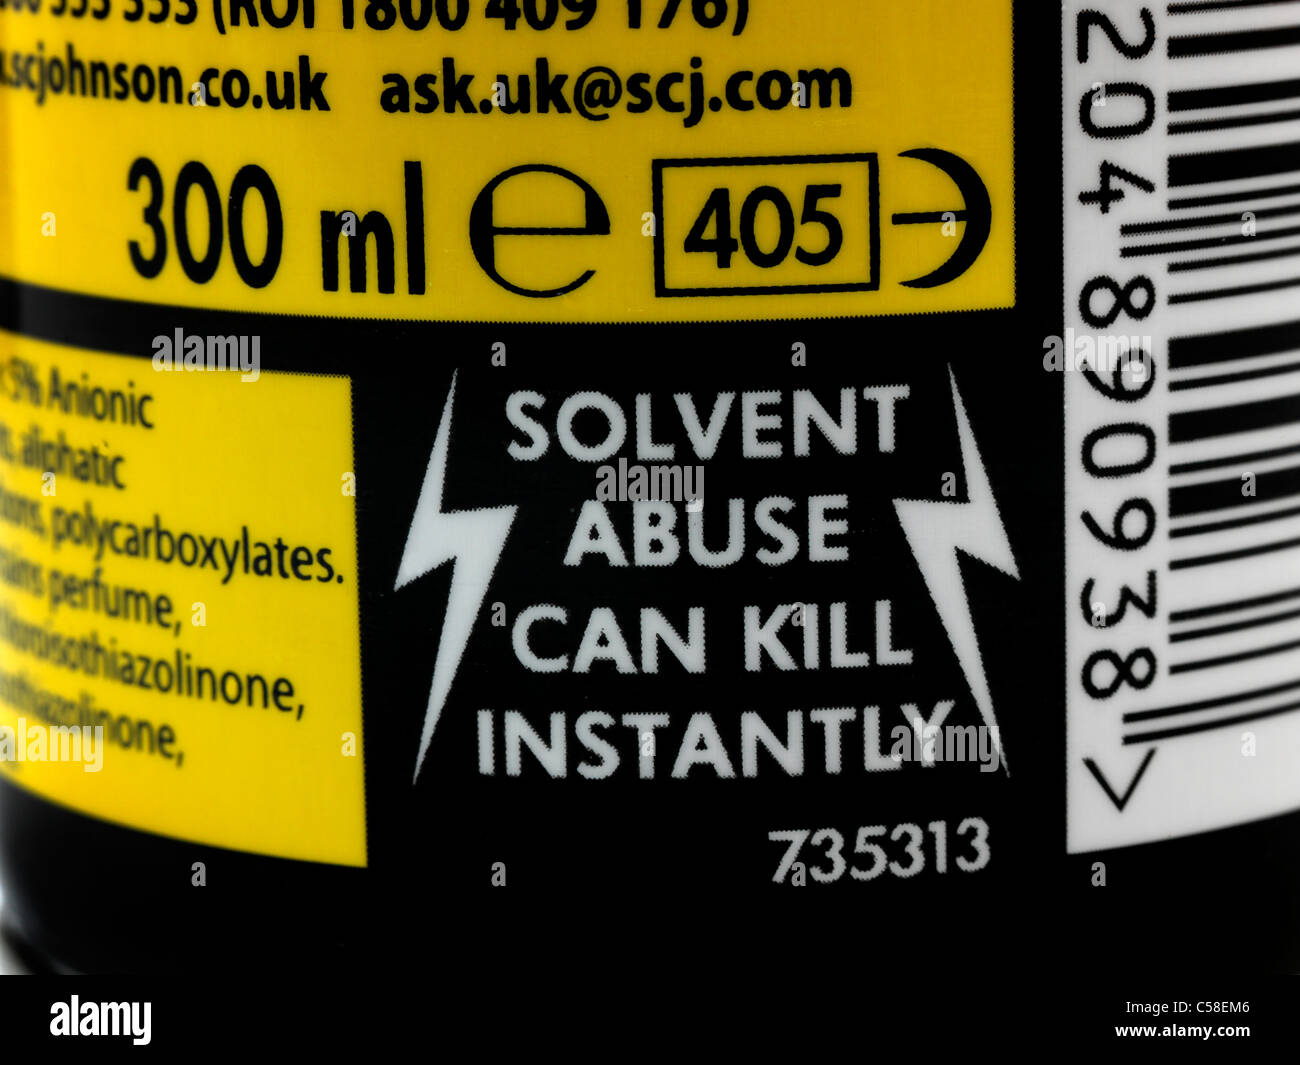 Solvent Abuse - VSA | Solvent Abuse